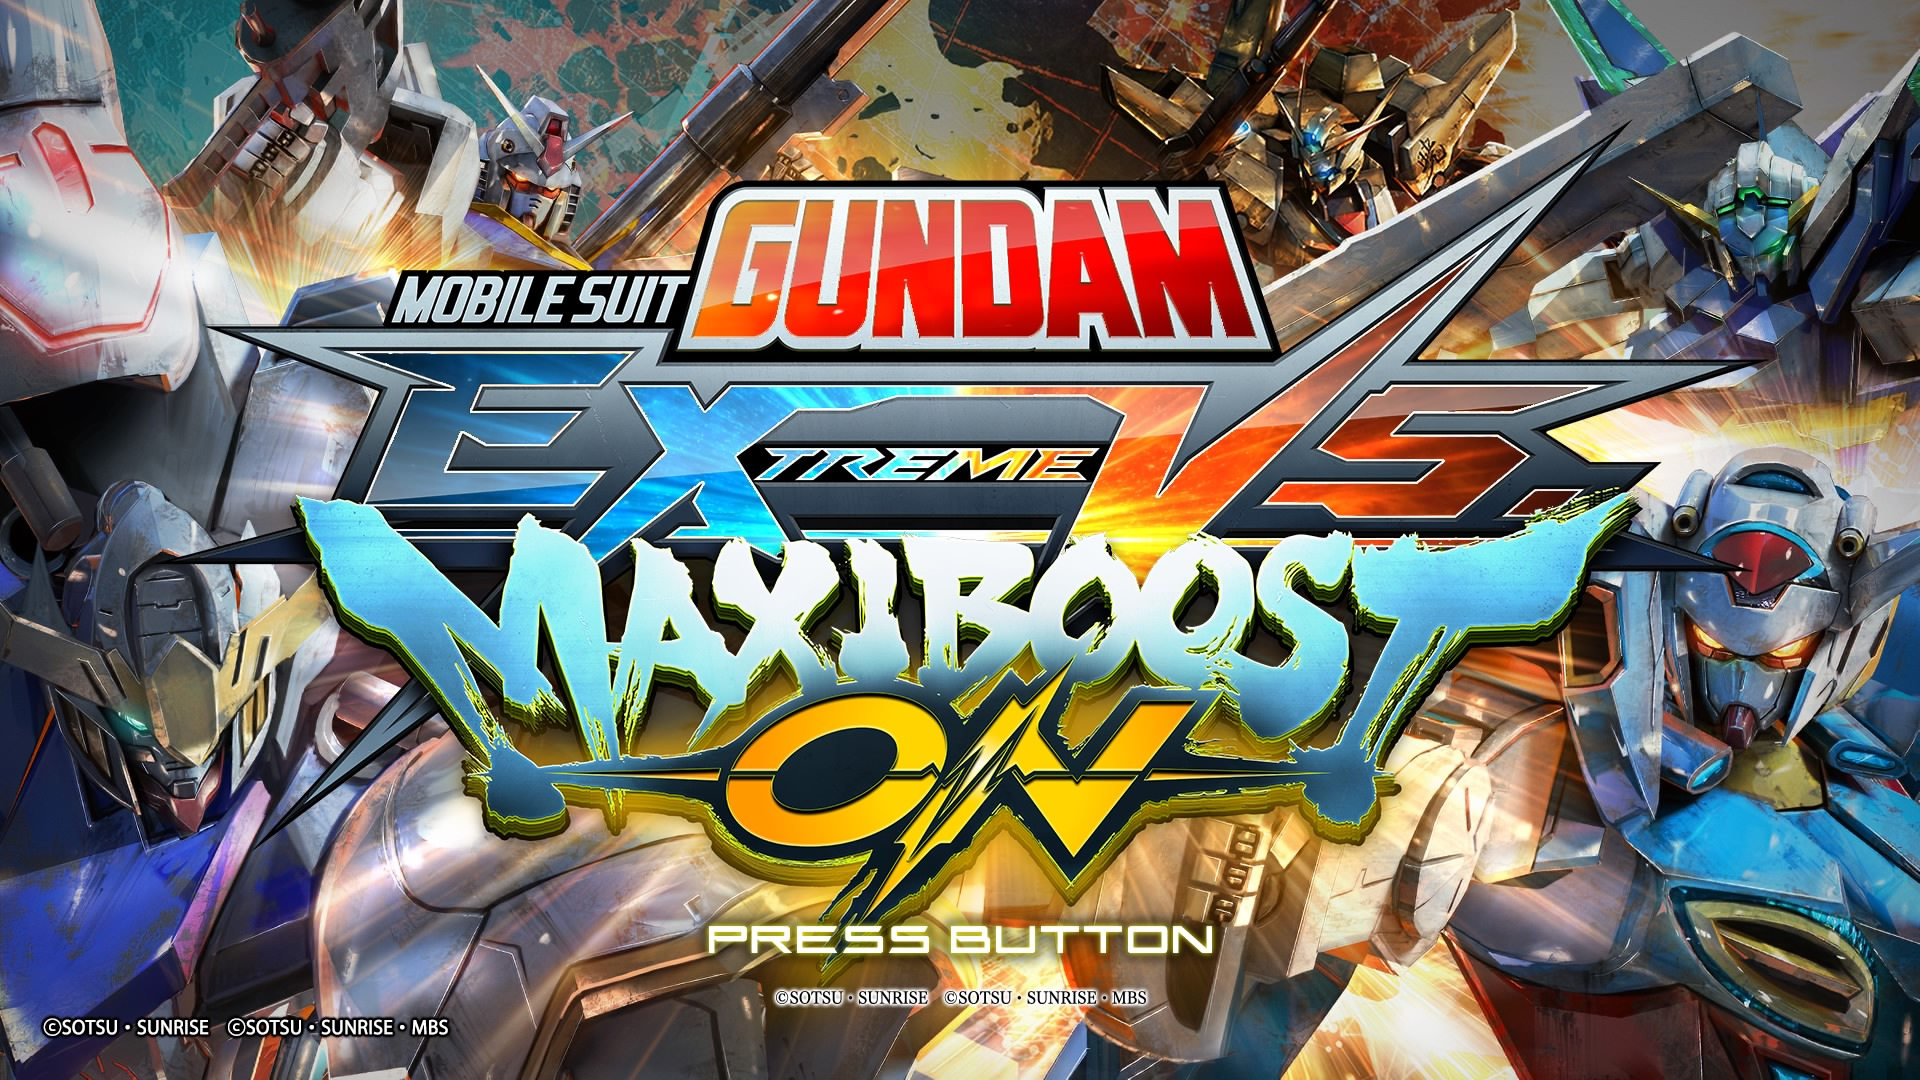 Mobile Suit Gundam: Extreme Vs. Maxi Boost ON (PS4)